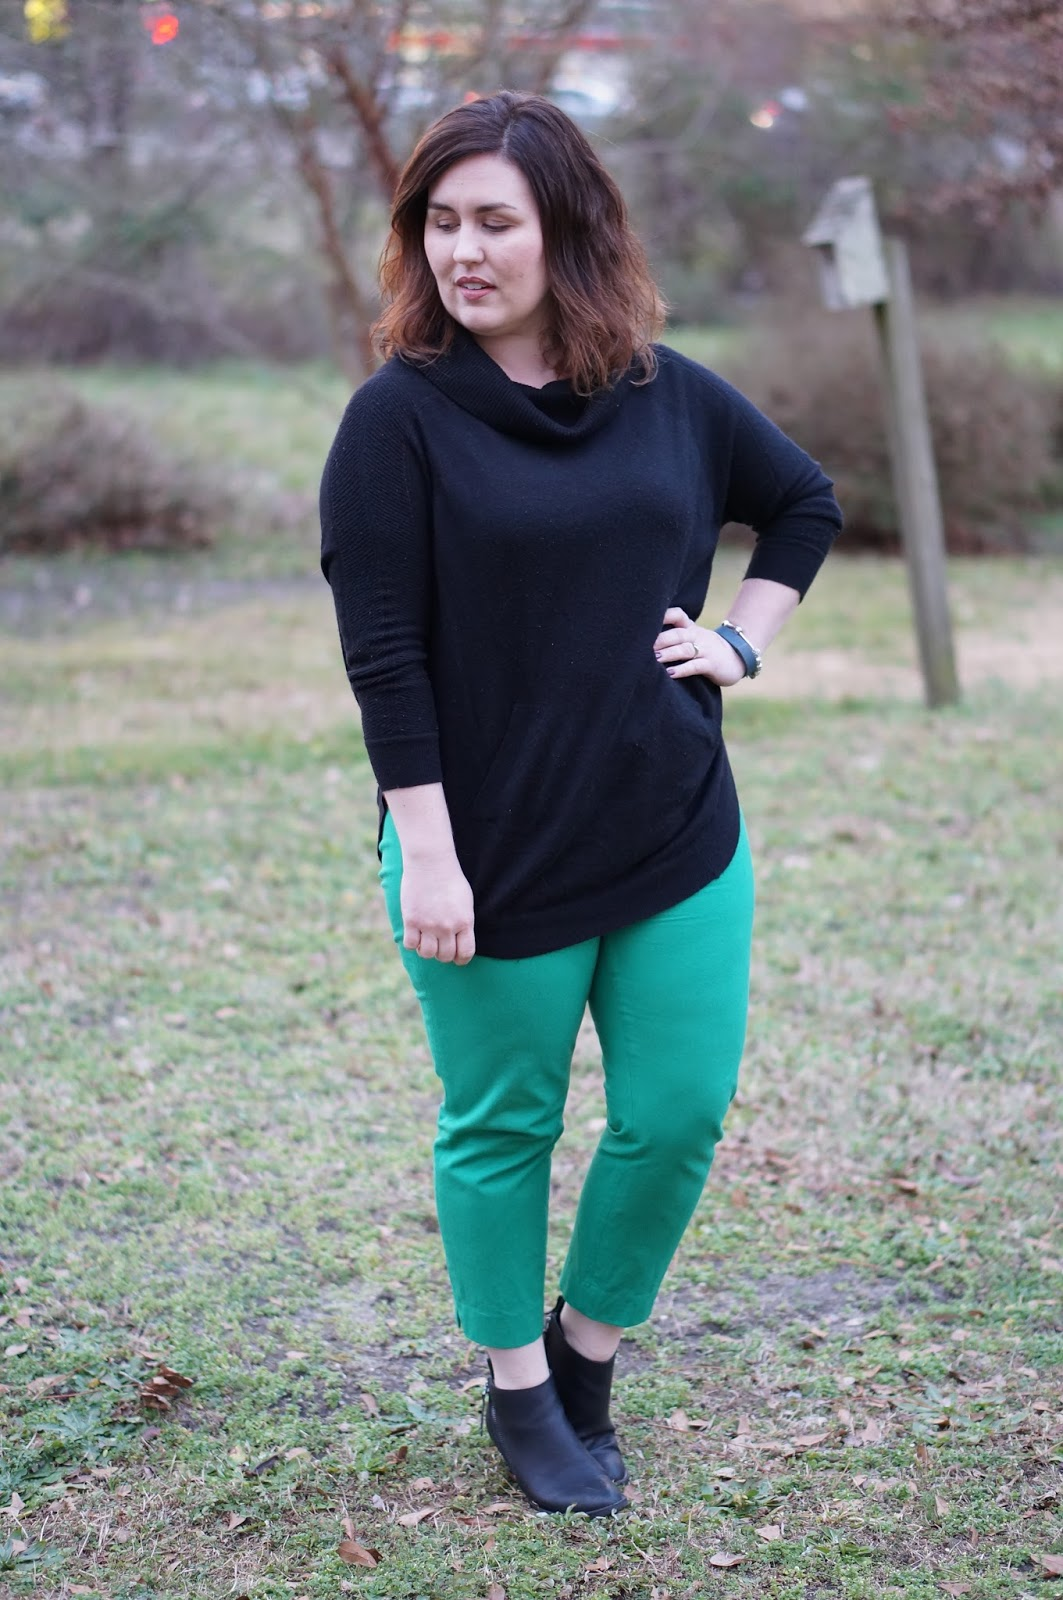 Rebecca Lately Colorblocking Kate Spade Studs Fate Stitch Fix Sweater Banana Republic Ankle Pants Target Jameson Booties